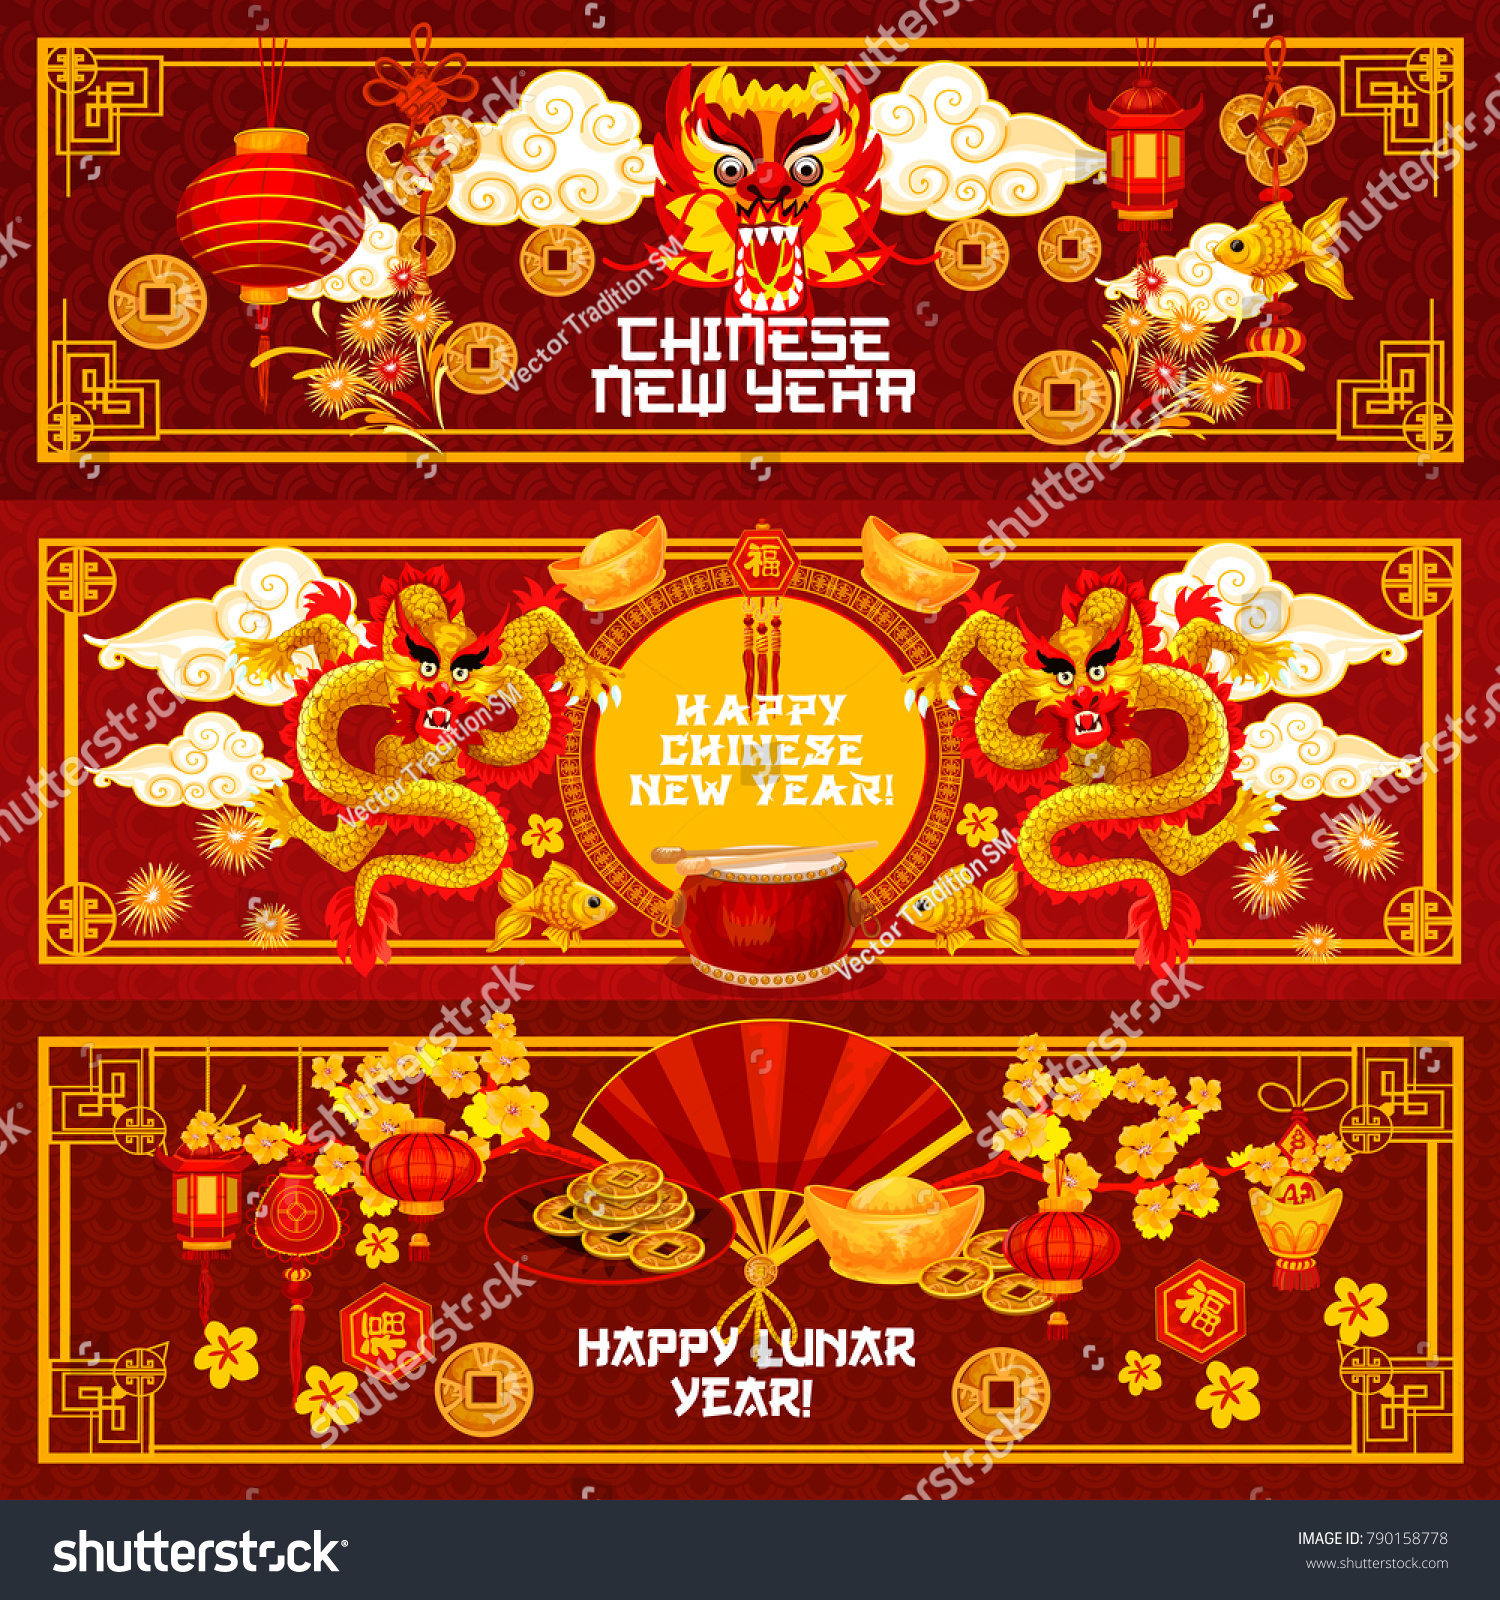 Happy Chinese New Year Lunar Holiday Greeting Card Of Traditional